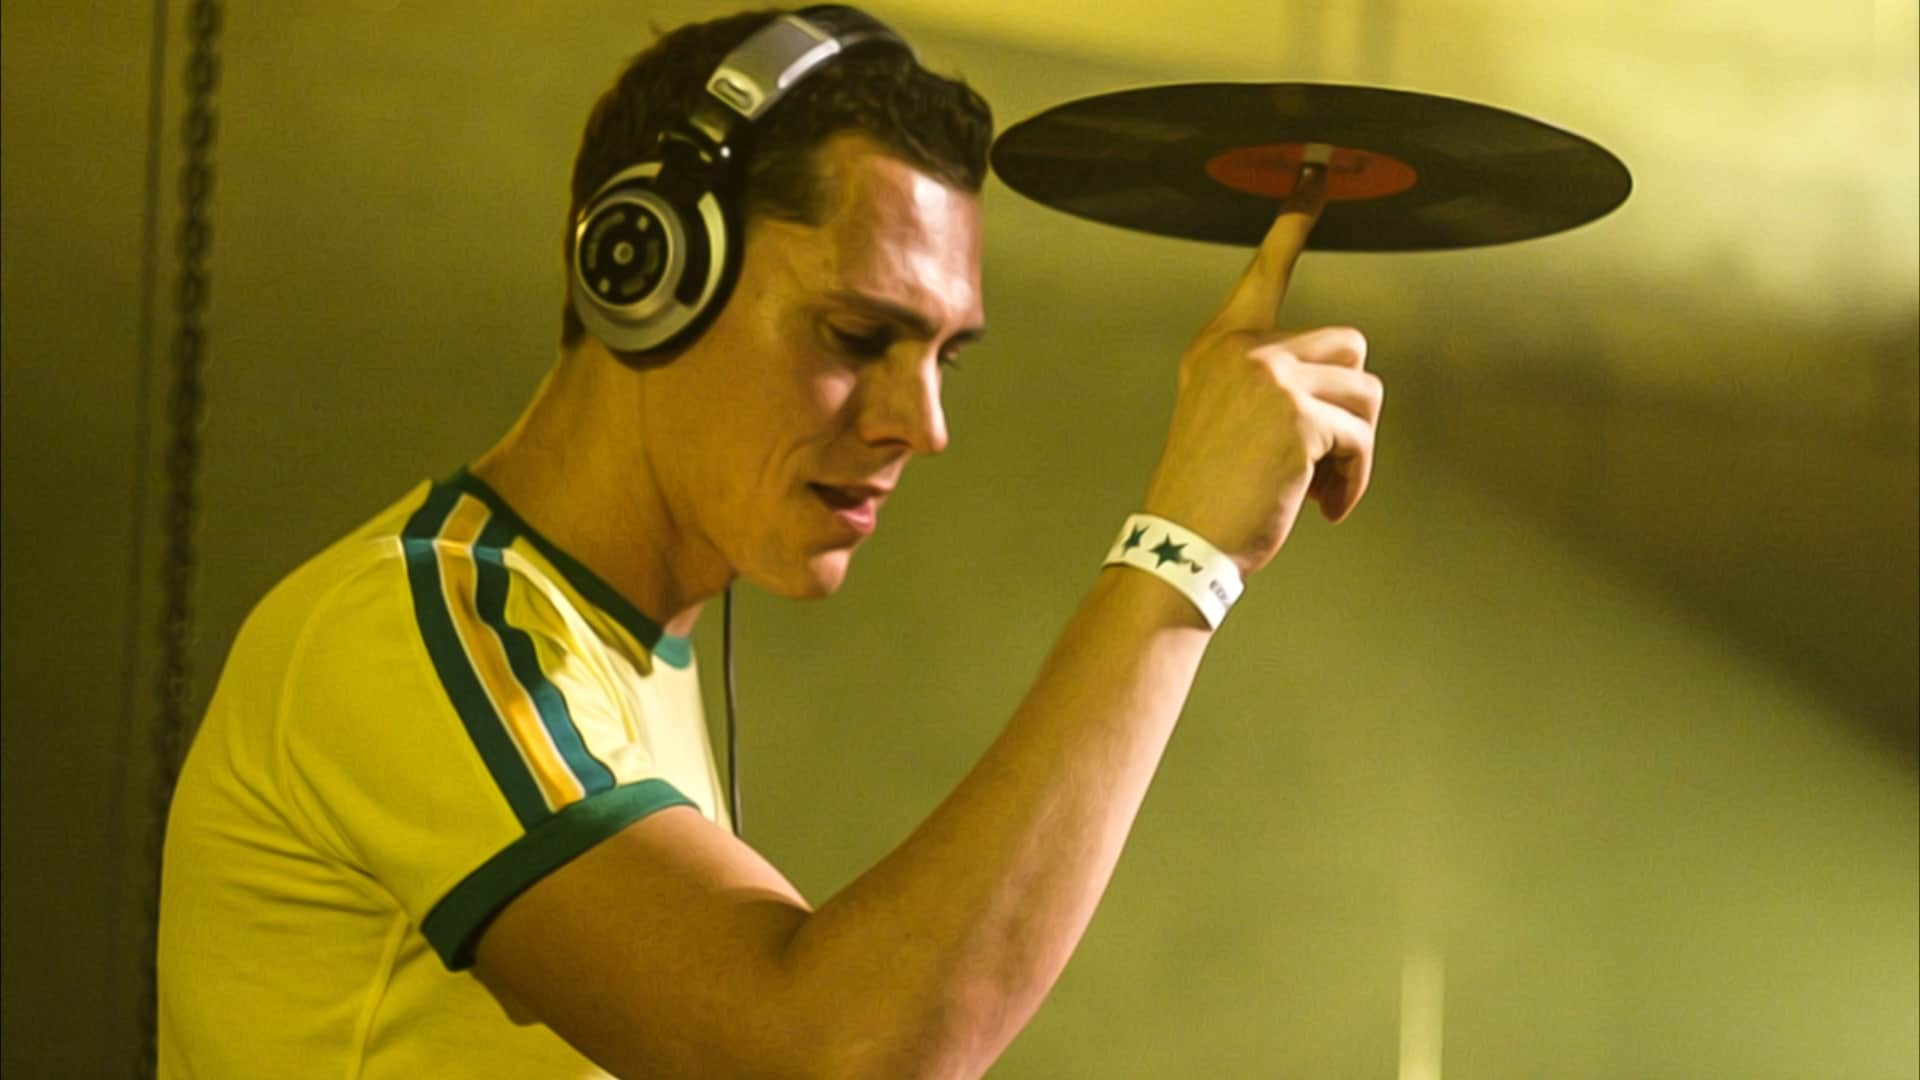 Tiesto Trance revisited